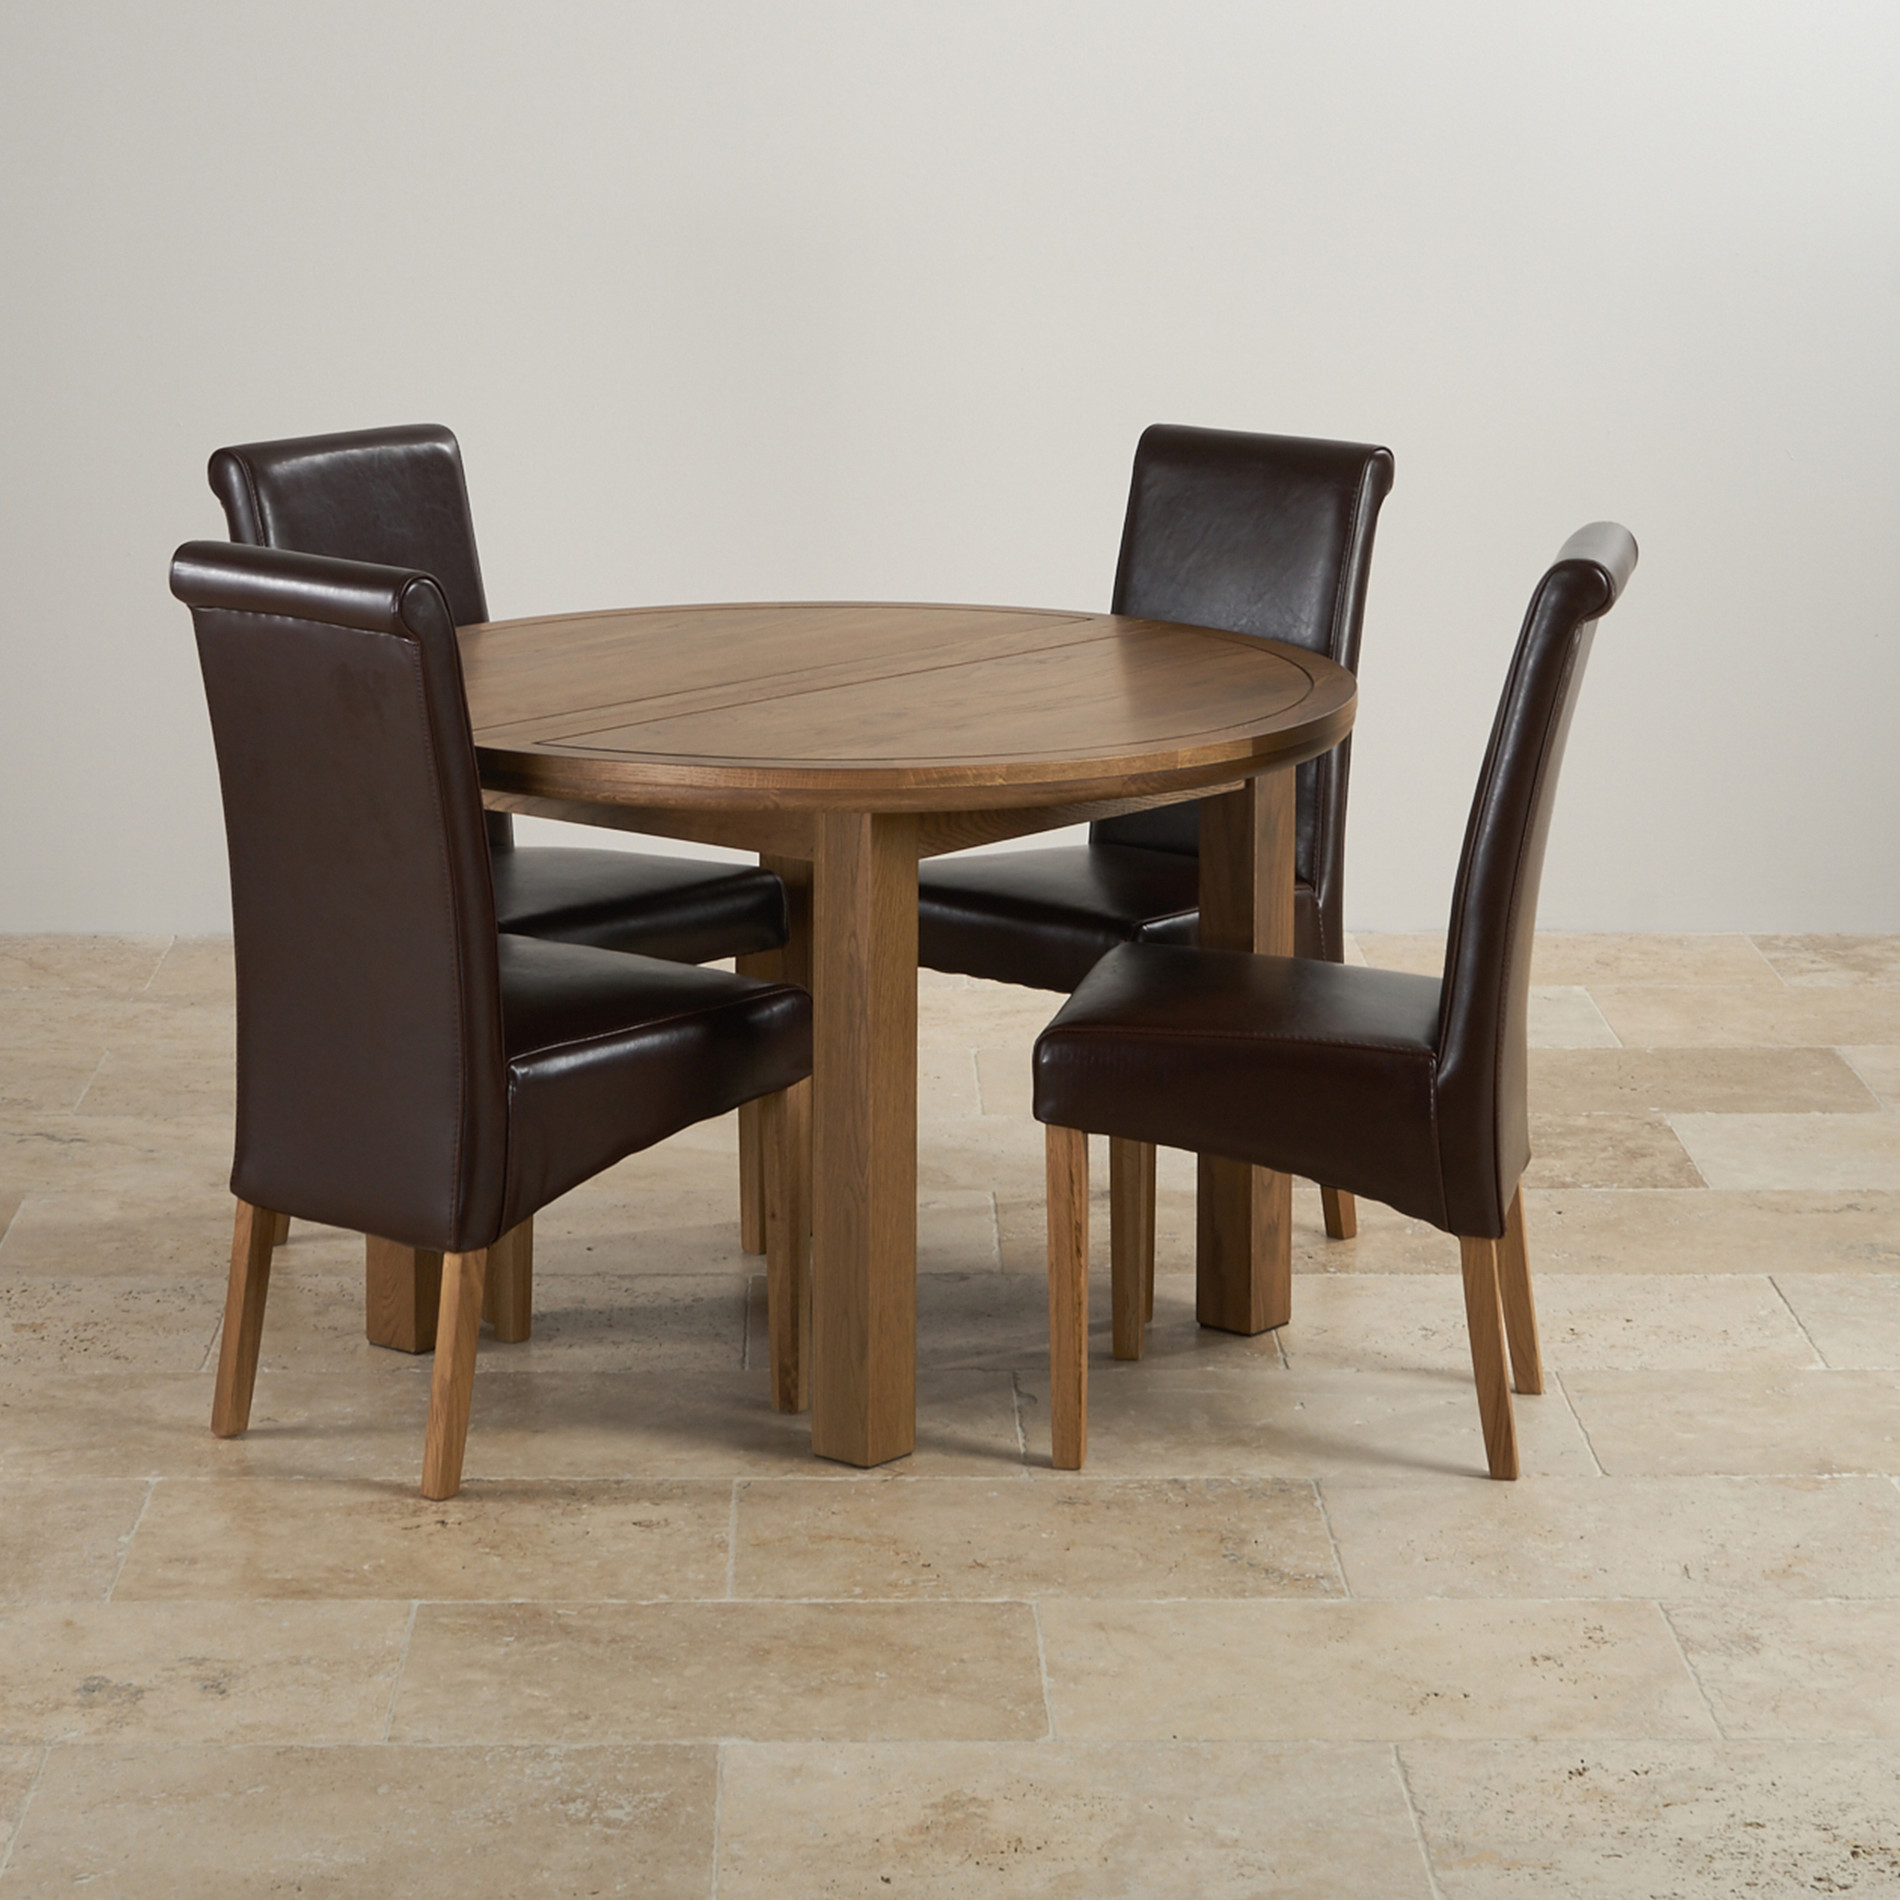 Knightsbridge round extending dining set dining table 4 for Round dining table for 4